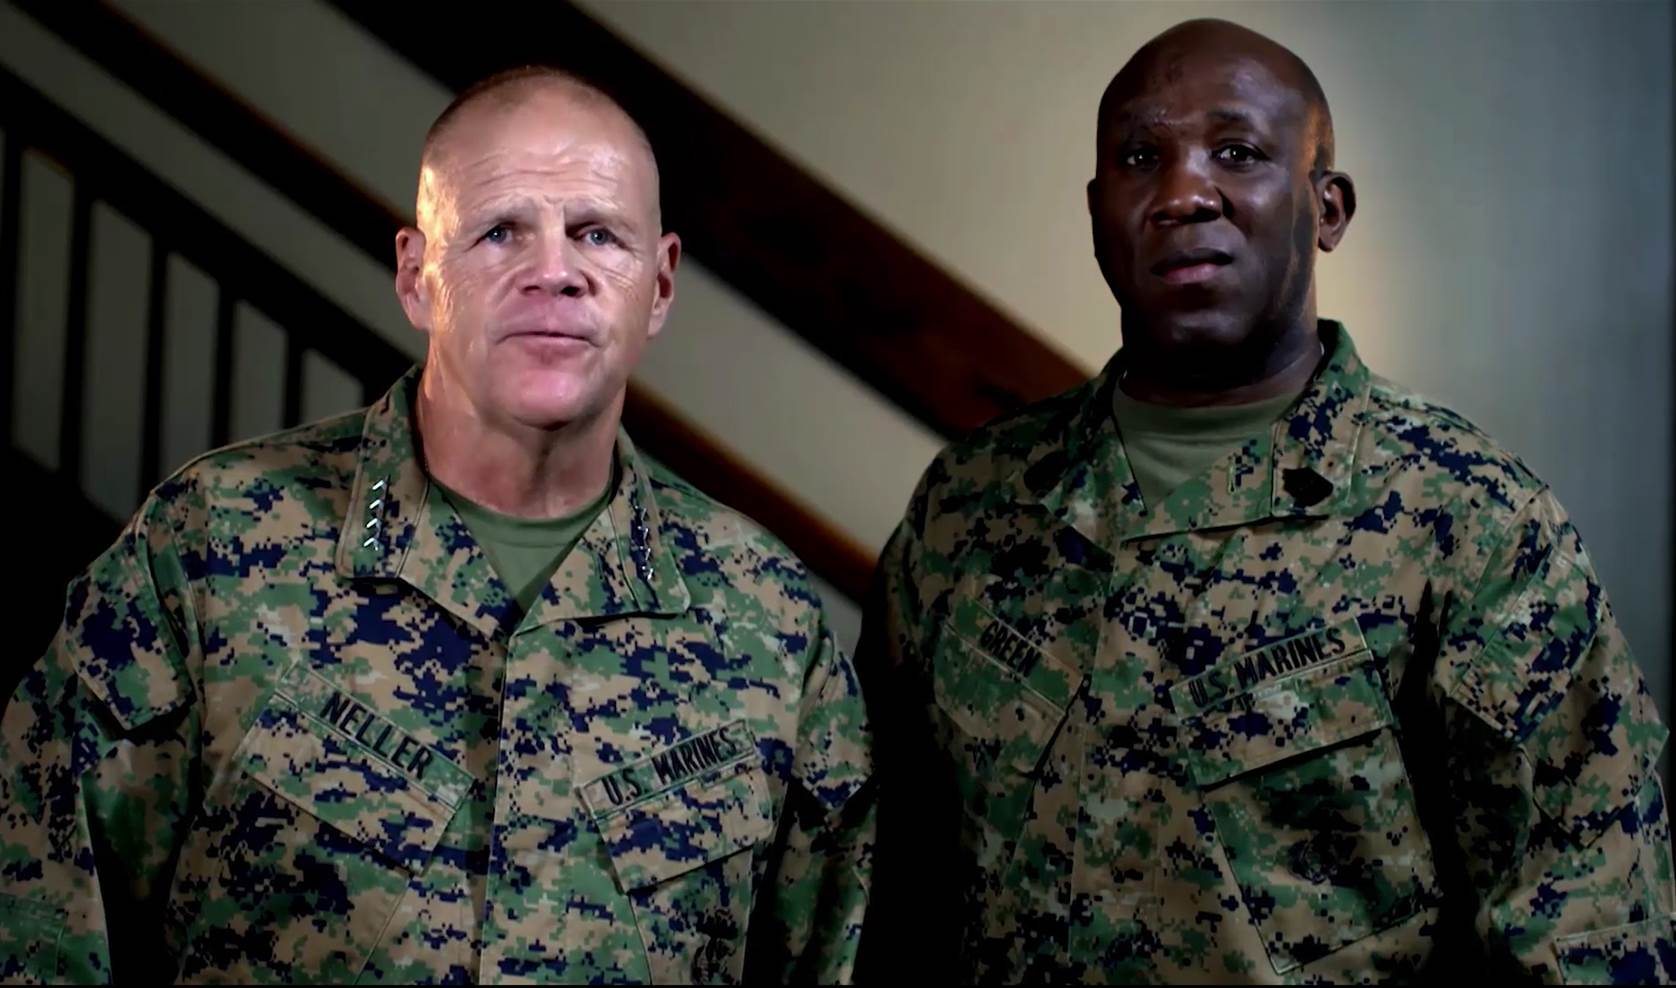 241st Marine Corps Birthday Message